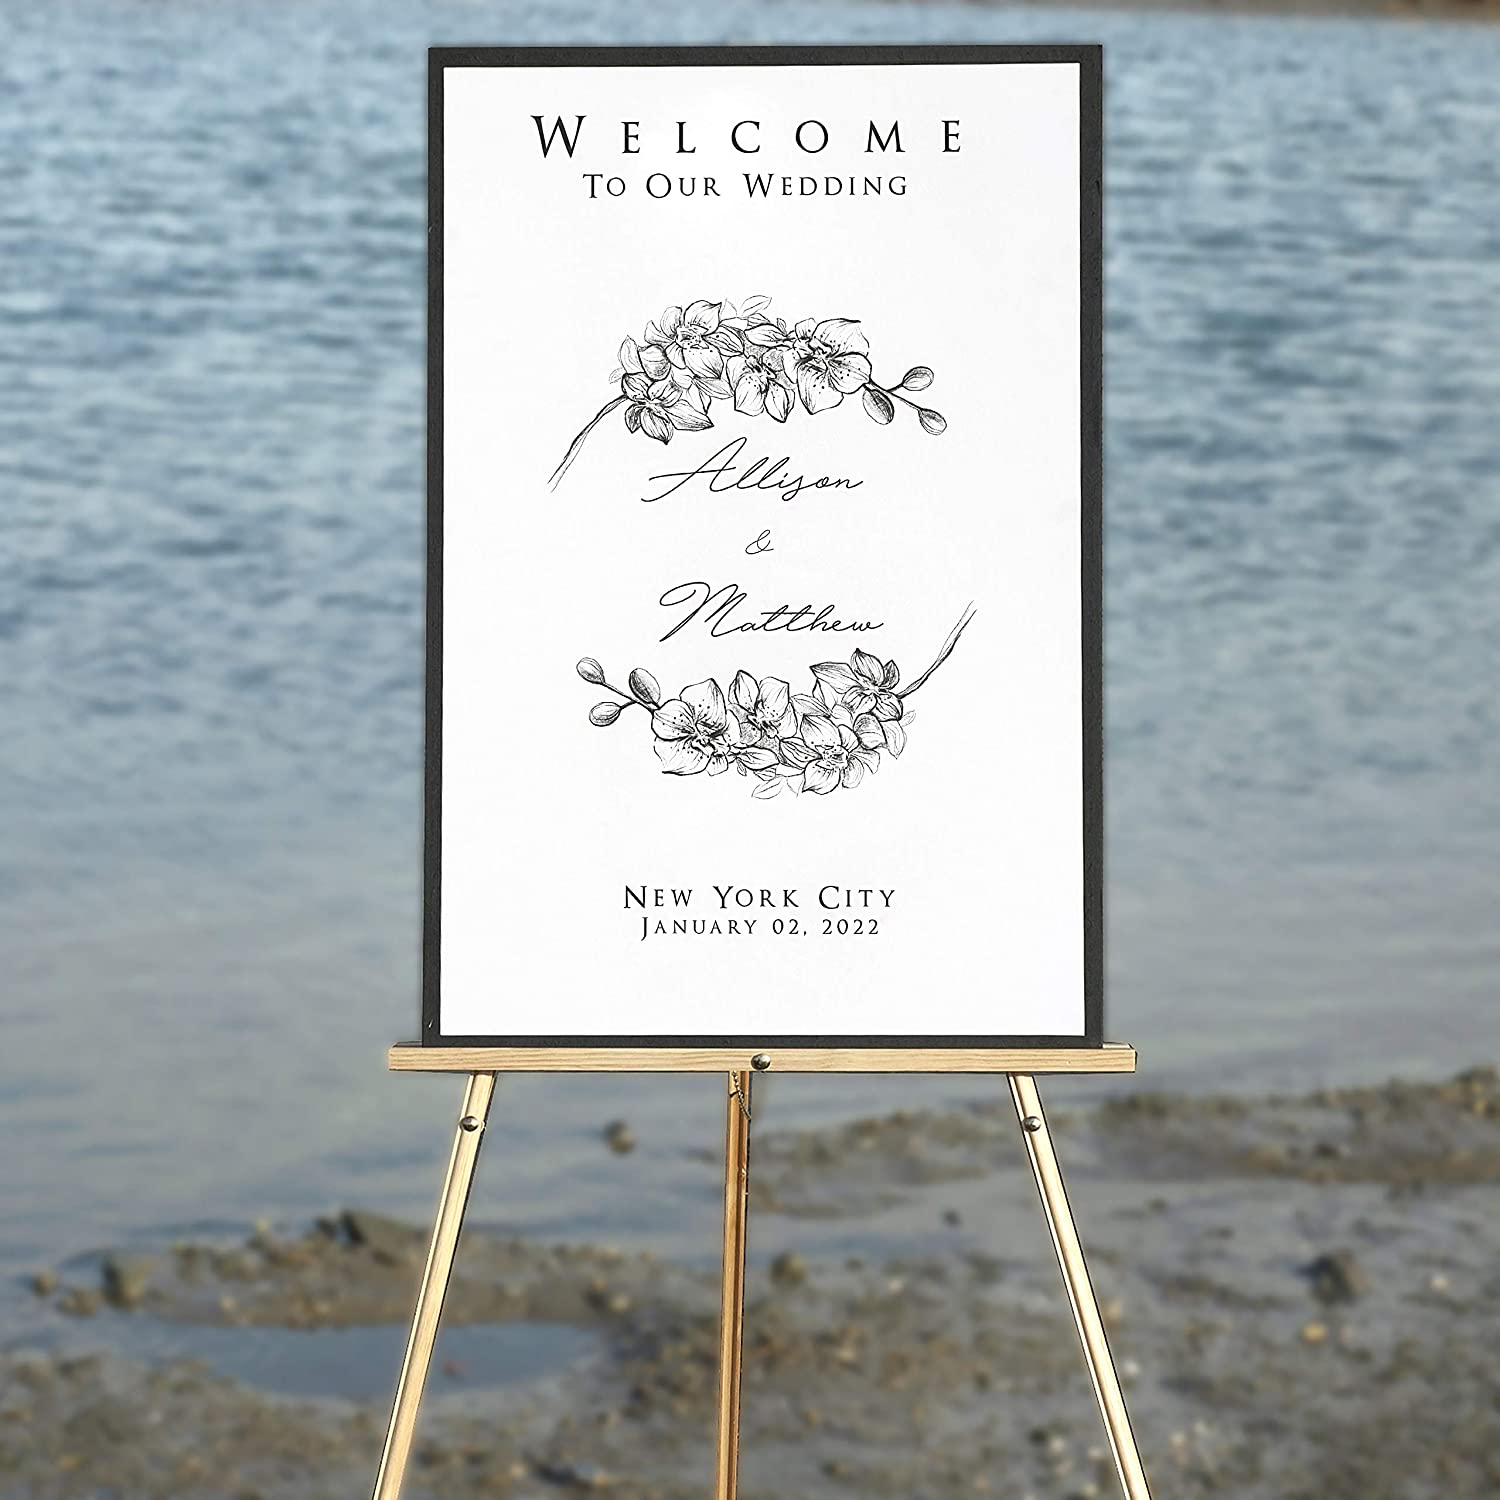 """Wedding Signage Custom Welcome Sign For Your Wedding Wedding /& Reception Decorations 20/""""x30/"""" Personalized Modern Welcome Sign Mounting Board Names and Date Free Shipping"""